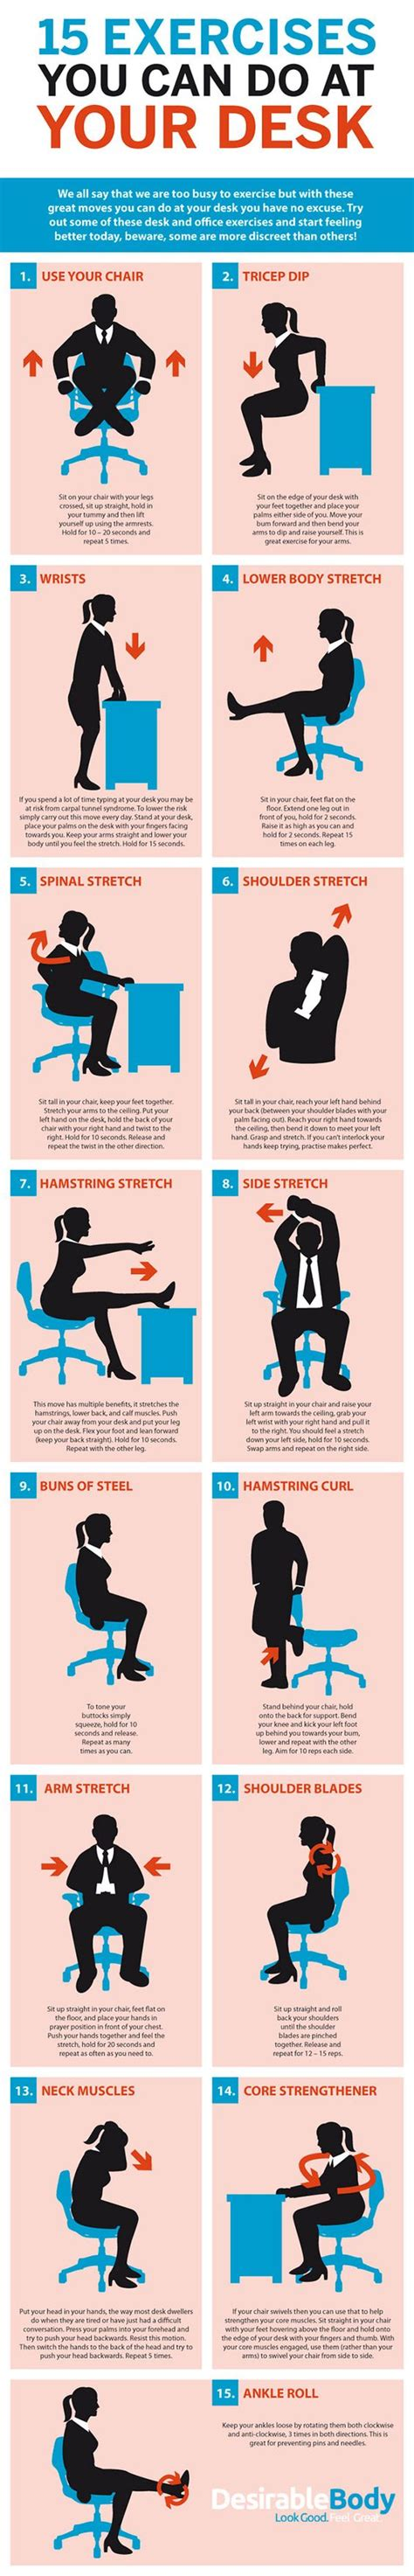 7 Exercises You Can Do While Waiting In Line by This Graphic Shows Bunch Of Desk Based Exercises For The